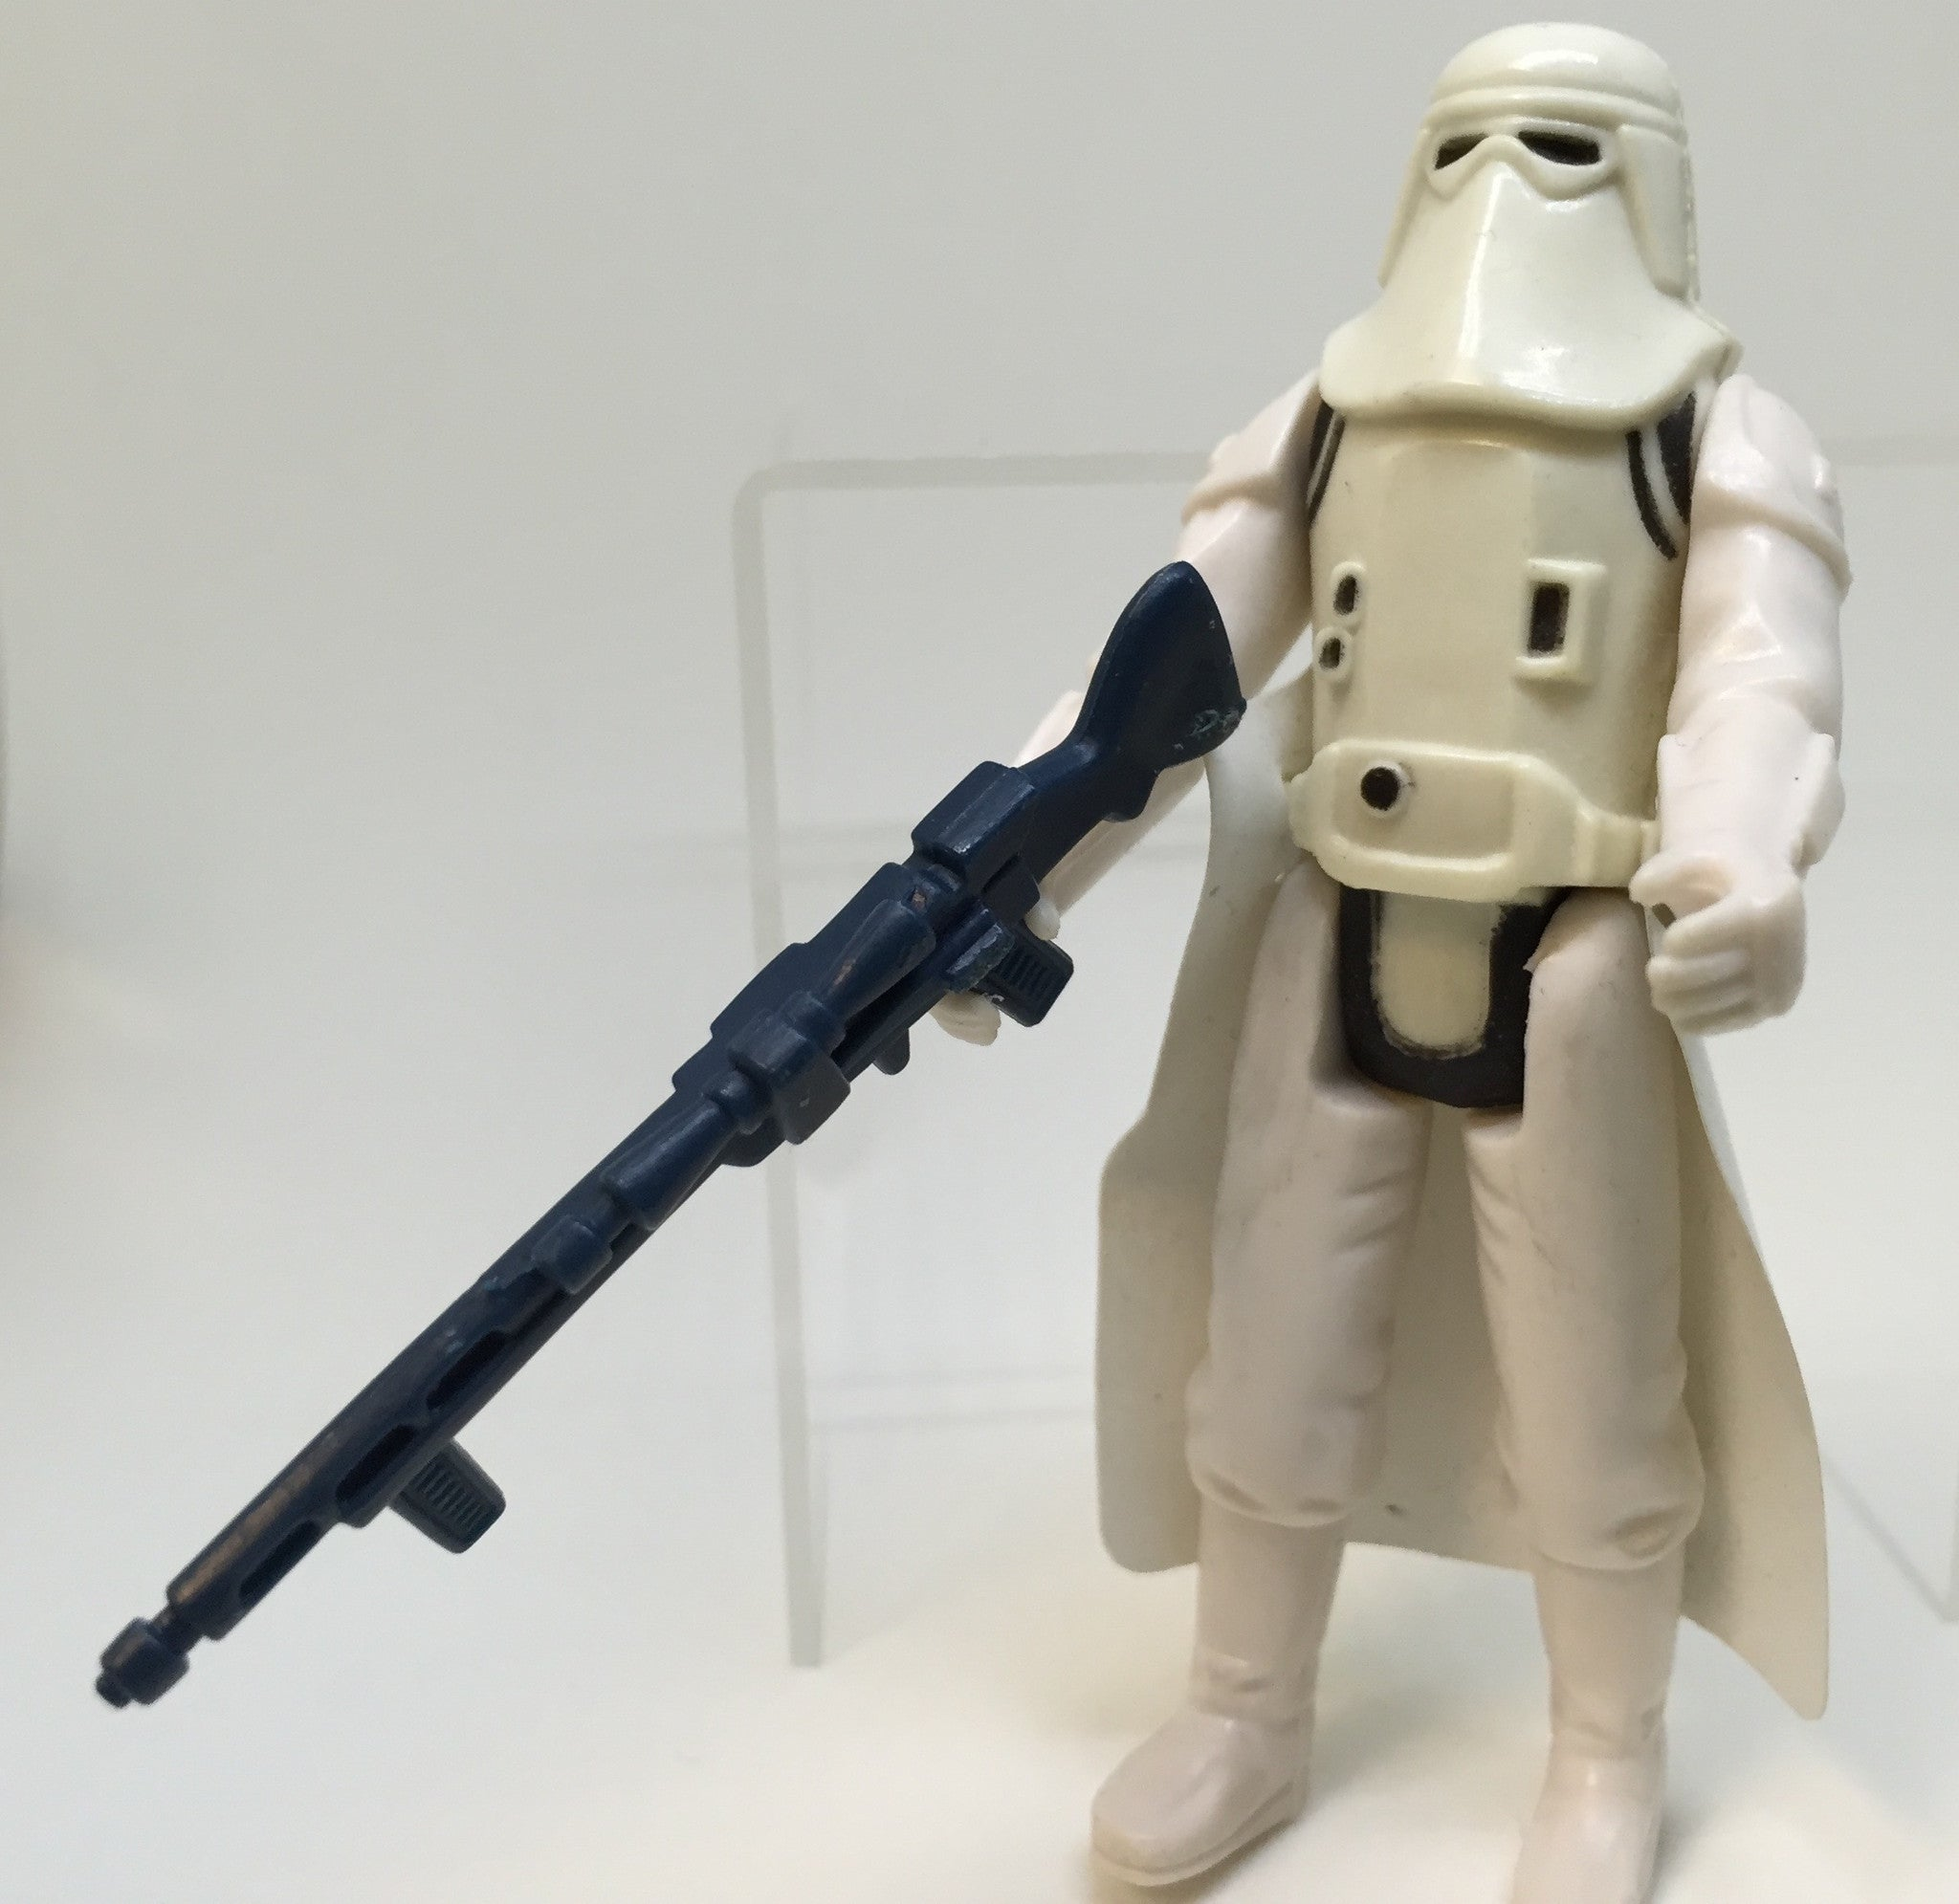 Vintage Star Wars Loose Imperial Hoth Snow Trooper Kenner Action Figure